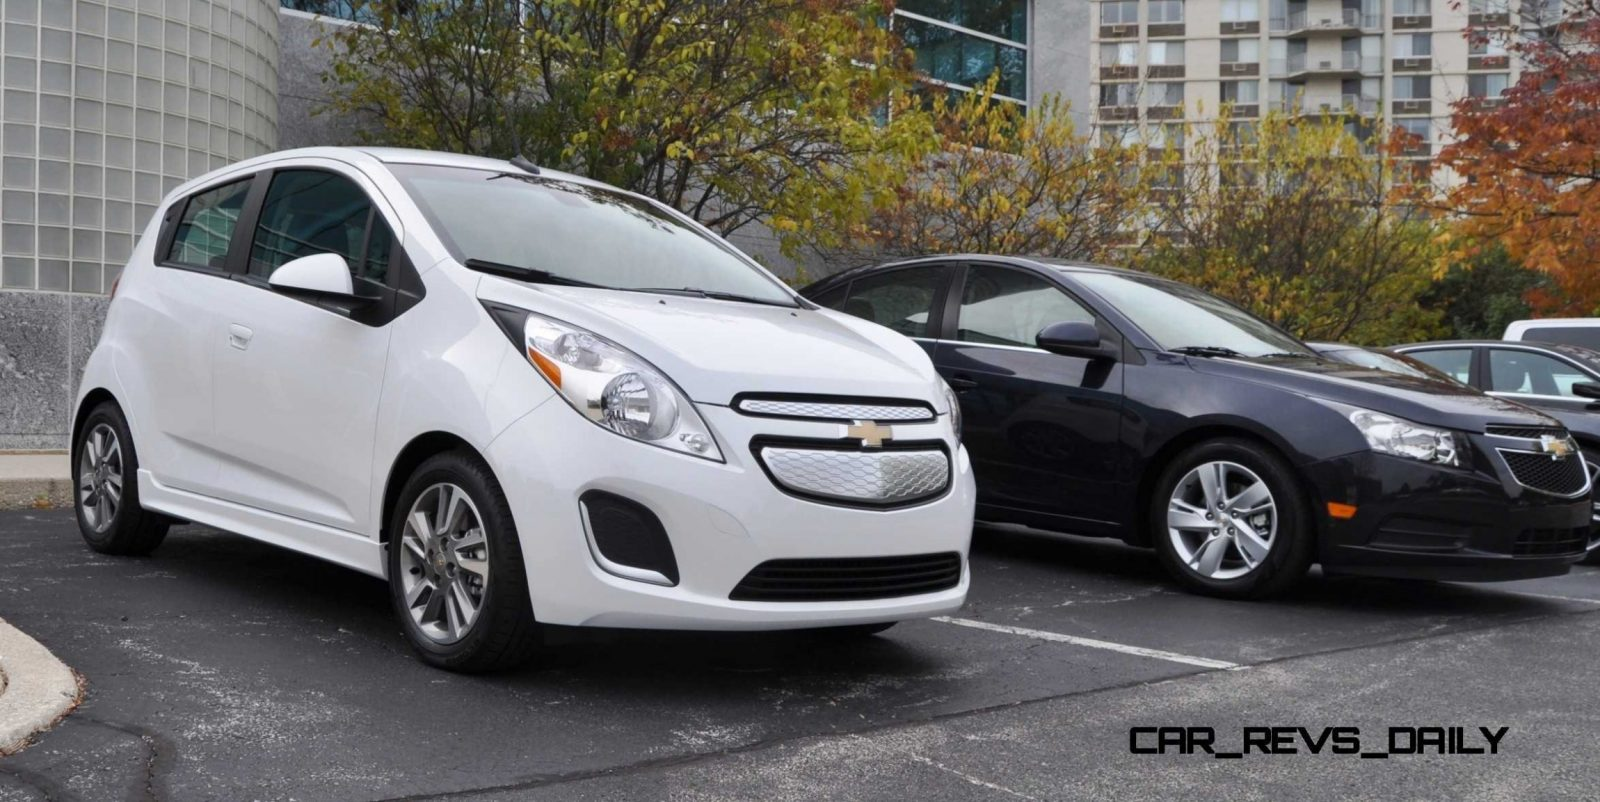 2014 chevrolet spark ev first glimpse photos inside and out looks cute in white car revs. Black Bedroom Furniture Sets. Home Design Ideas